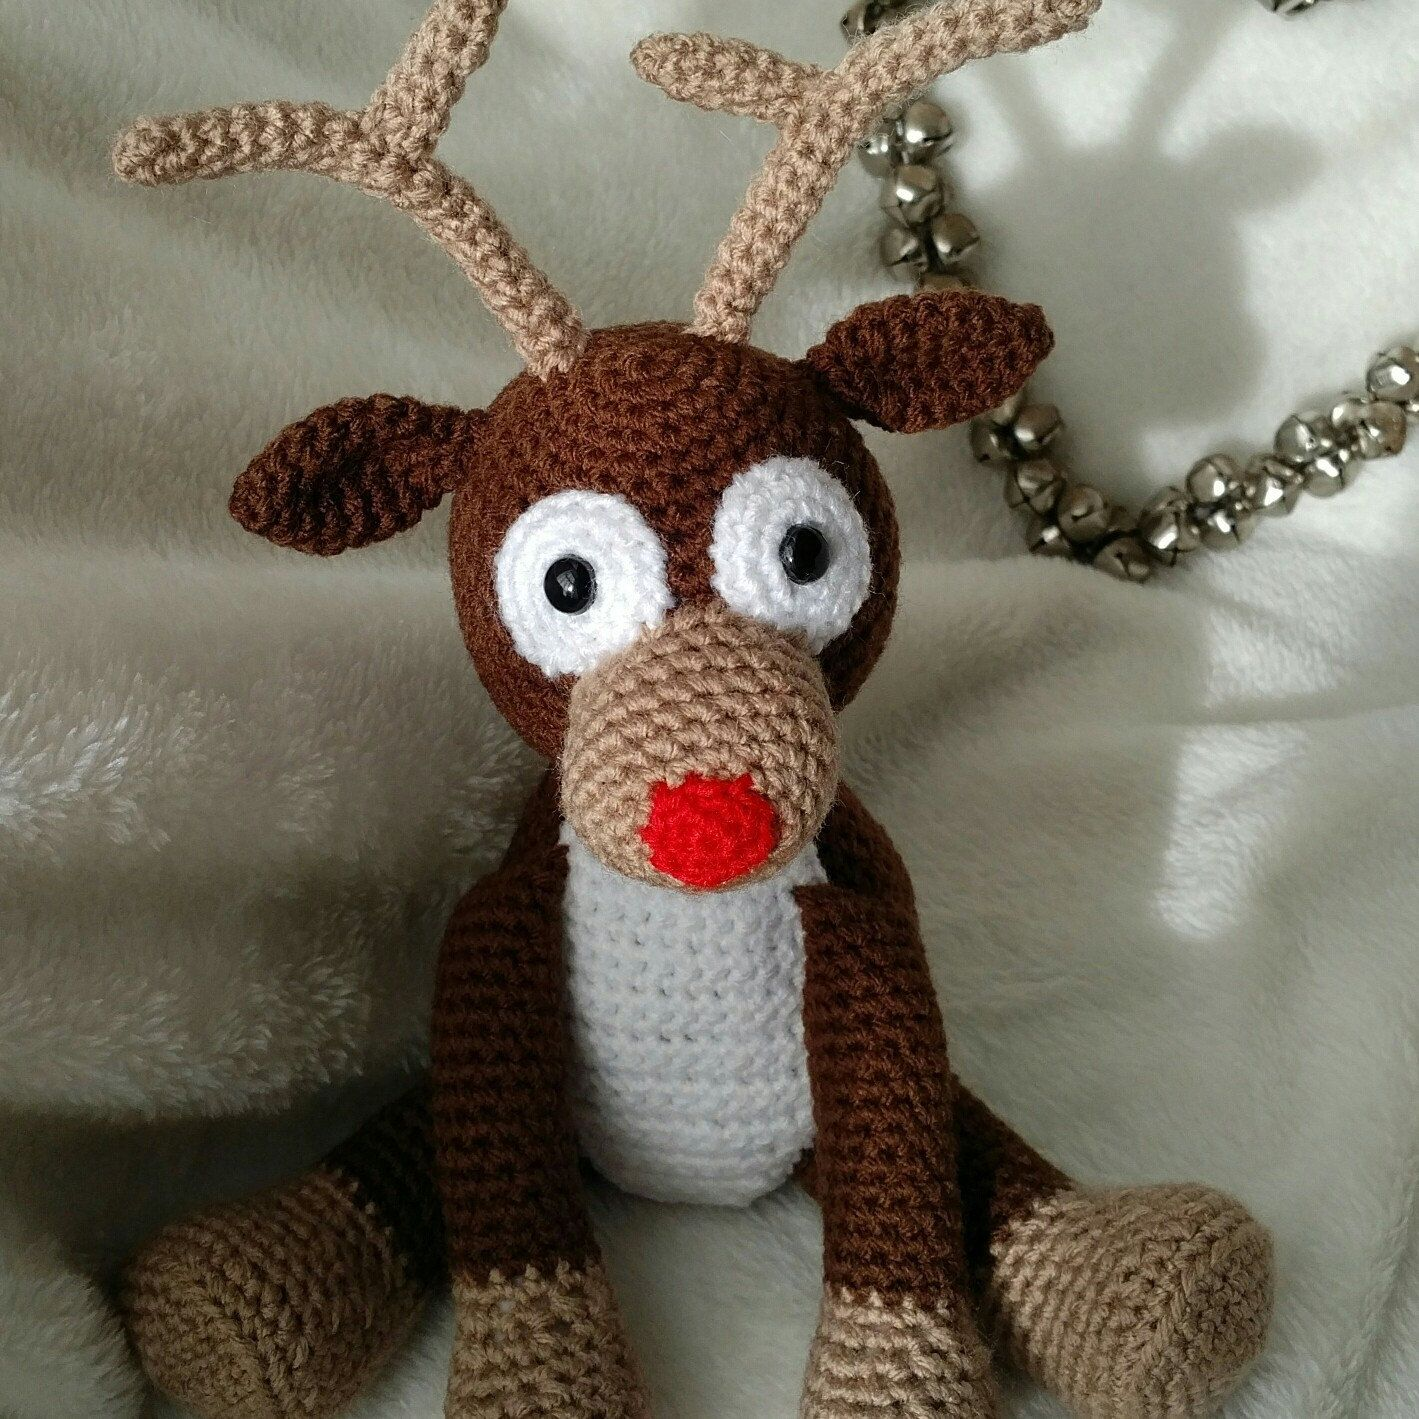 Reindeer crochet pattern rudolph the red nosed reindeer crochet reindeer crochet pattern rudolph the red nosed reindeer crochet pattern crochet pattern reindeer amigurumi pattern christmas bankloansurffo Choice Image